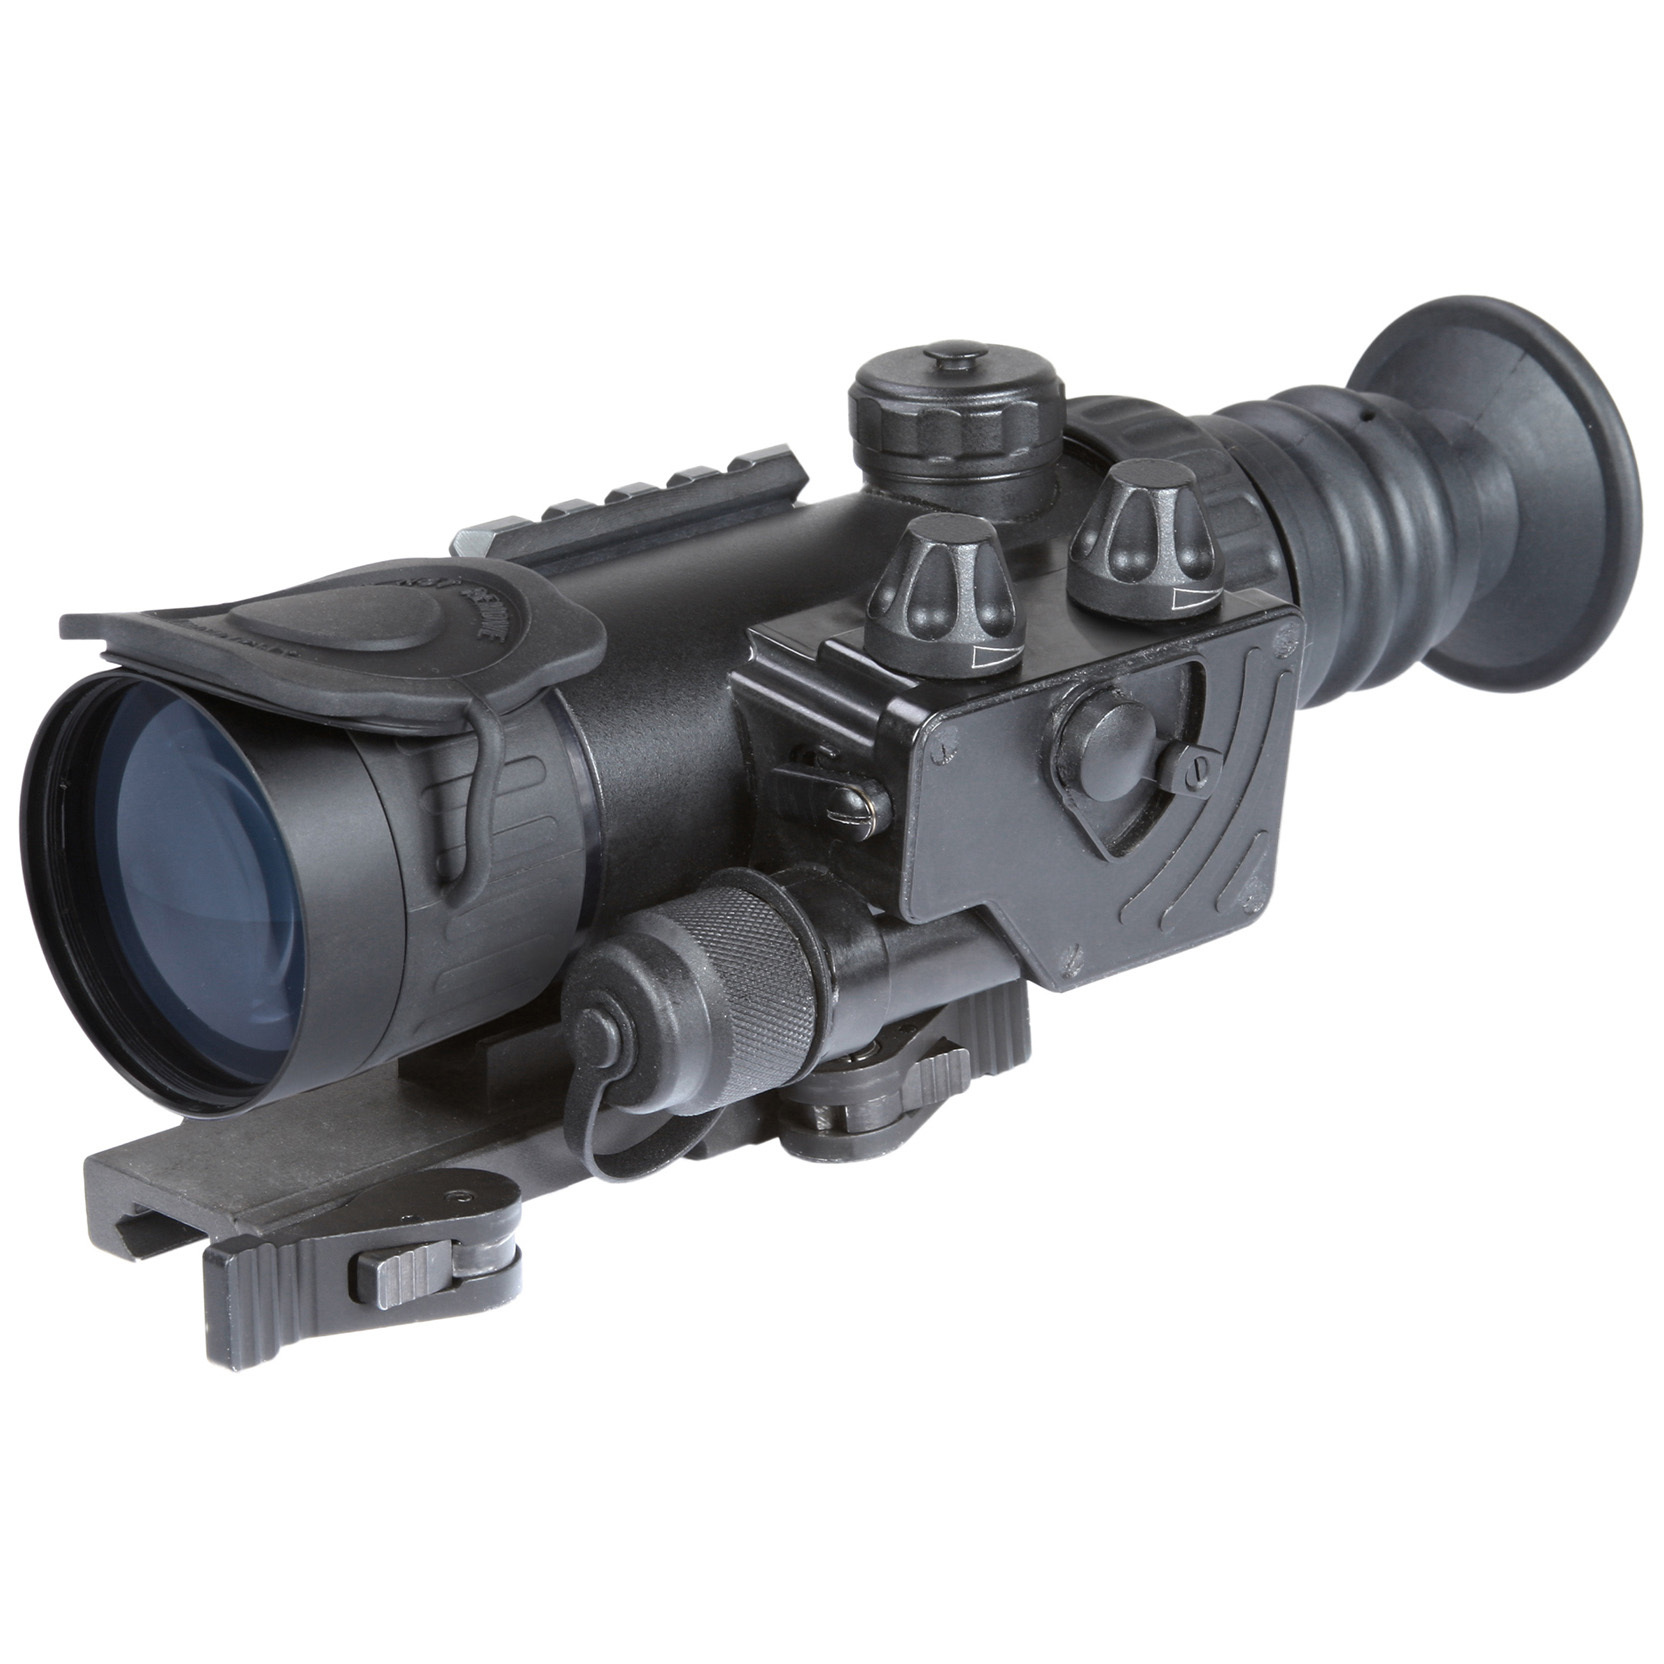 "Armasight Vulcan 2.5-5X Gen 3 Bravo MG Night Vision Rifle Scope. High-resolution imaging and high-level performance in a lightweight, compact weapon sight. Small in size, but huge in performance, this Vulcan 2.5-5X Gen 3 Bravo MG delivers stunning night imaging without unbalancing your rifle. It weighs just 27 ozs., but still packs a high-resolution image tube, multi-coated all-glass lenses and an internally adjustable fine reticle that makes precise shot placement incredibly easy.Mount it to your rifle's Weaver or Picatinny rail in seconds. No tools. No time wasted. Then let the Vulcan do its thing, pulling your target out of the shadows with a Gen 3 Bravo MG image tube and serving it up in stunning clarity. Ideal for predator hunters, tactical marksmen and security personnel. Features:Wide array of IIT configurations 2.5-5X magnification with included magnifier Shockproof, all-glass IR transmission multi-coated optics Bright light cut-off Illuminated reticle with brightness adjustment Variable gain control Includes wireless remote Detachable long-range infrared illuminator Waterproof design for durability Low battery indicator Quick-release mount Mounts to a standard Weaver rail Runs on 1 CR123A battery (included) or 1 AA battery (not included) Includes lens cap, carrying case, battery adapter, and lens tissue Measures 3.8 x 2.8 x 9.4""l. Weighs 1.7 lbs. Specifications:IIT generation: Gen 3 Bravo MG Resolution: 57-64 lp / mm Exit pupil diameter: 7mm Eye relief: 45mm Windage and elevation adjustments: 1/2"" MOA Lens system: F1.35, F60 mm 16 degrees F.O.V. Diopter adjustment: -4 to +4 Controls: direct Battery life: 50 hours (CR123A) or 45 hours (AA) Operating temperature: -40 degrees to 122 degrees F. Storage temperature: -50 degrees to 158 degrees F. - $4,084.99"